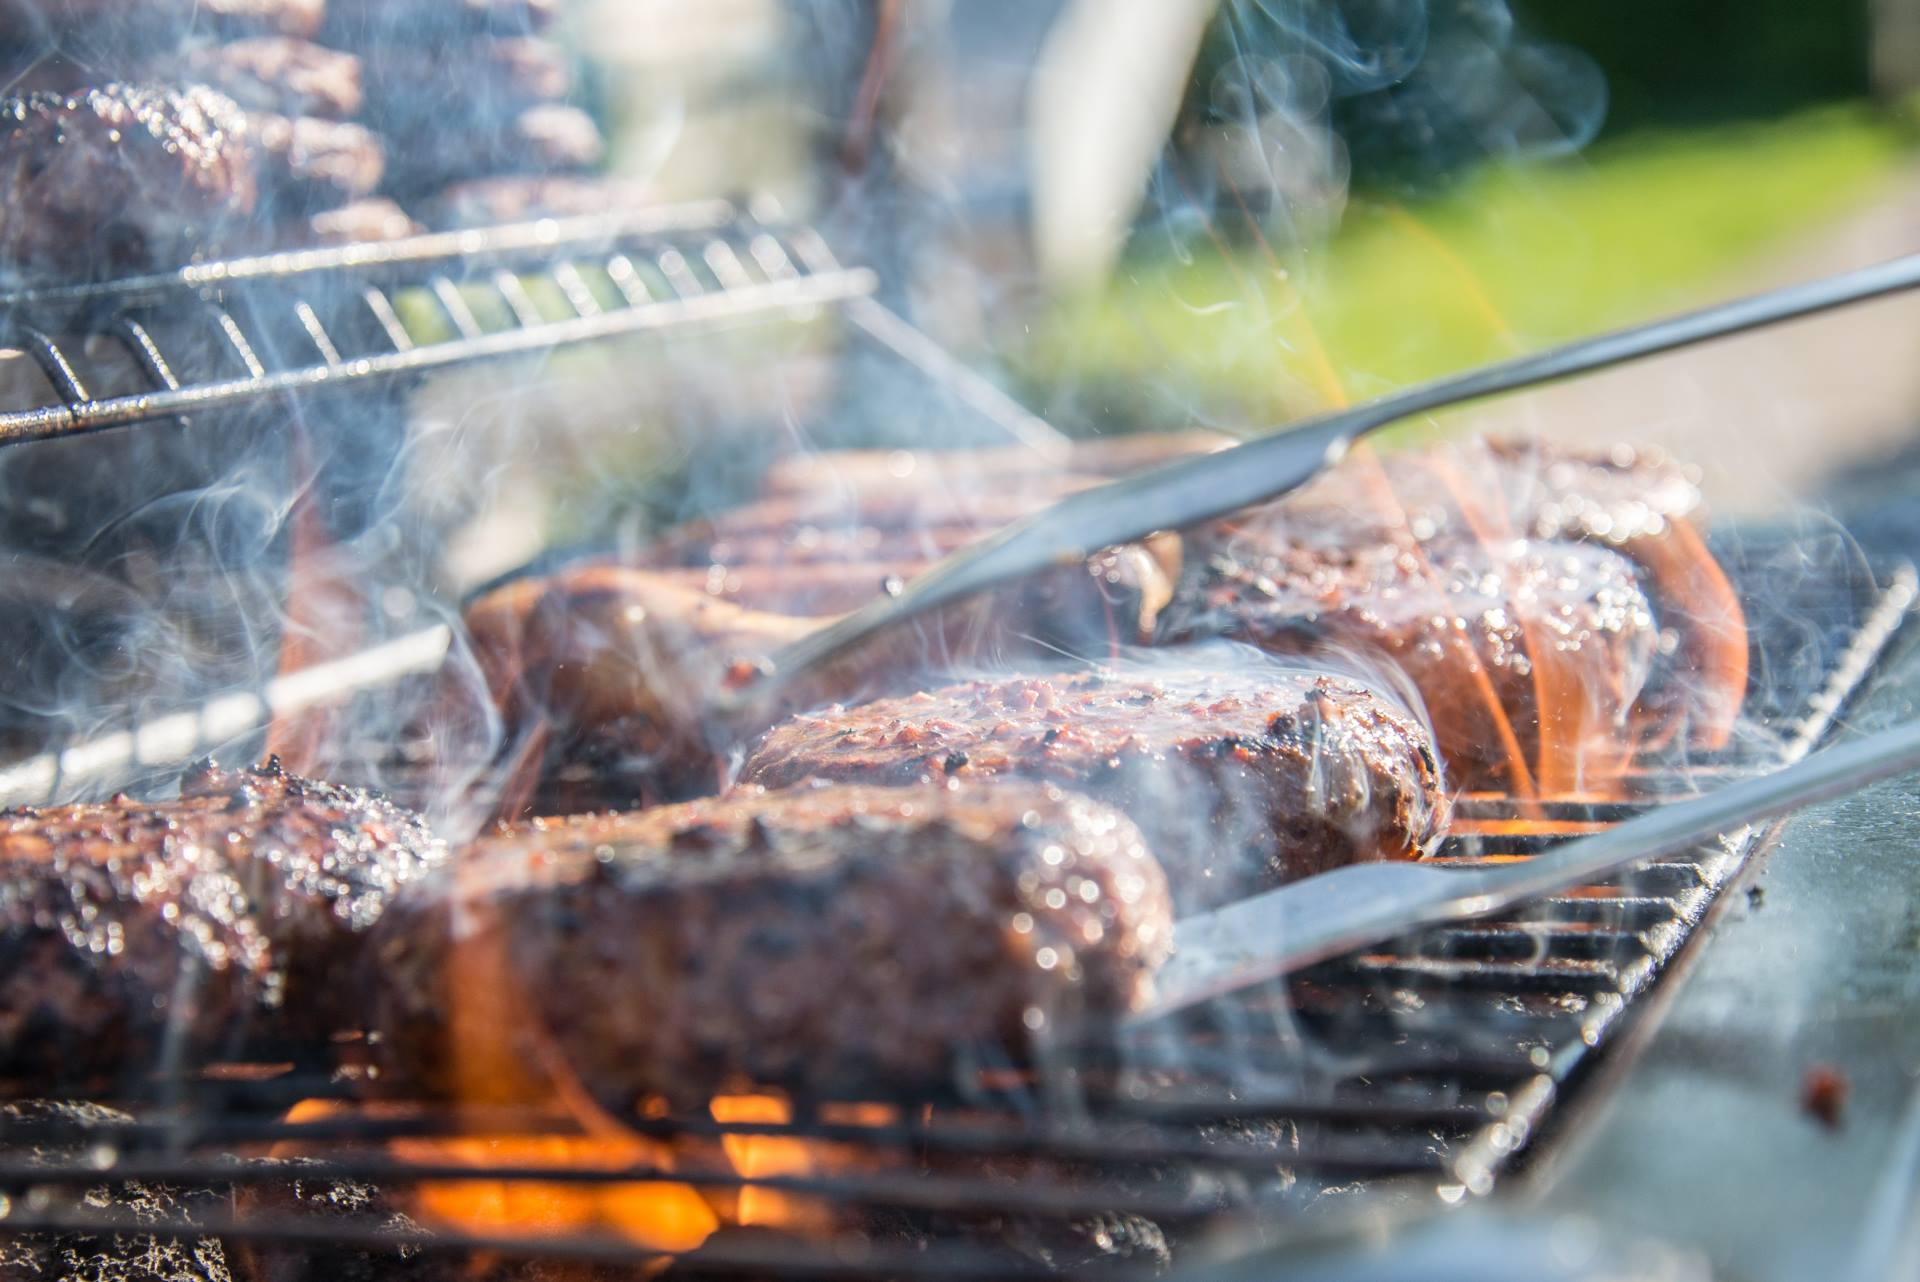 Anytime, Anywhere – Barbecue Guru Michael Strohecker Can Grill Anything For Up to 200 People